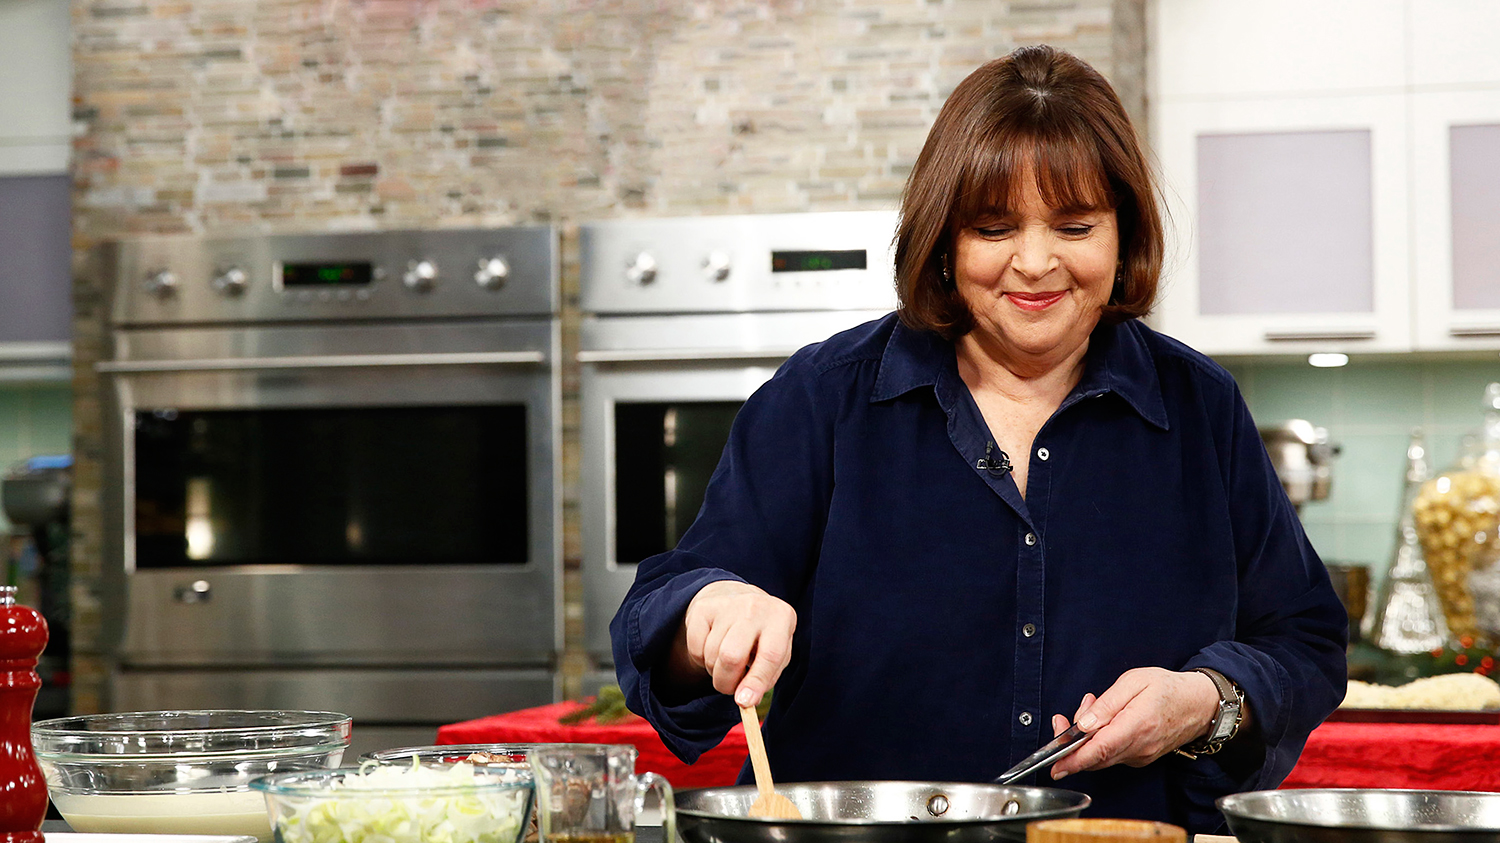 ina garten decorating a flag cake is downright mesmerizing | food